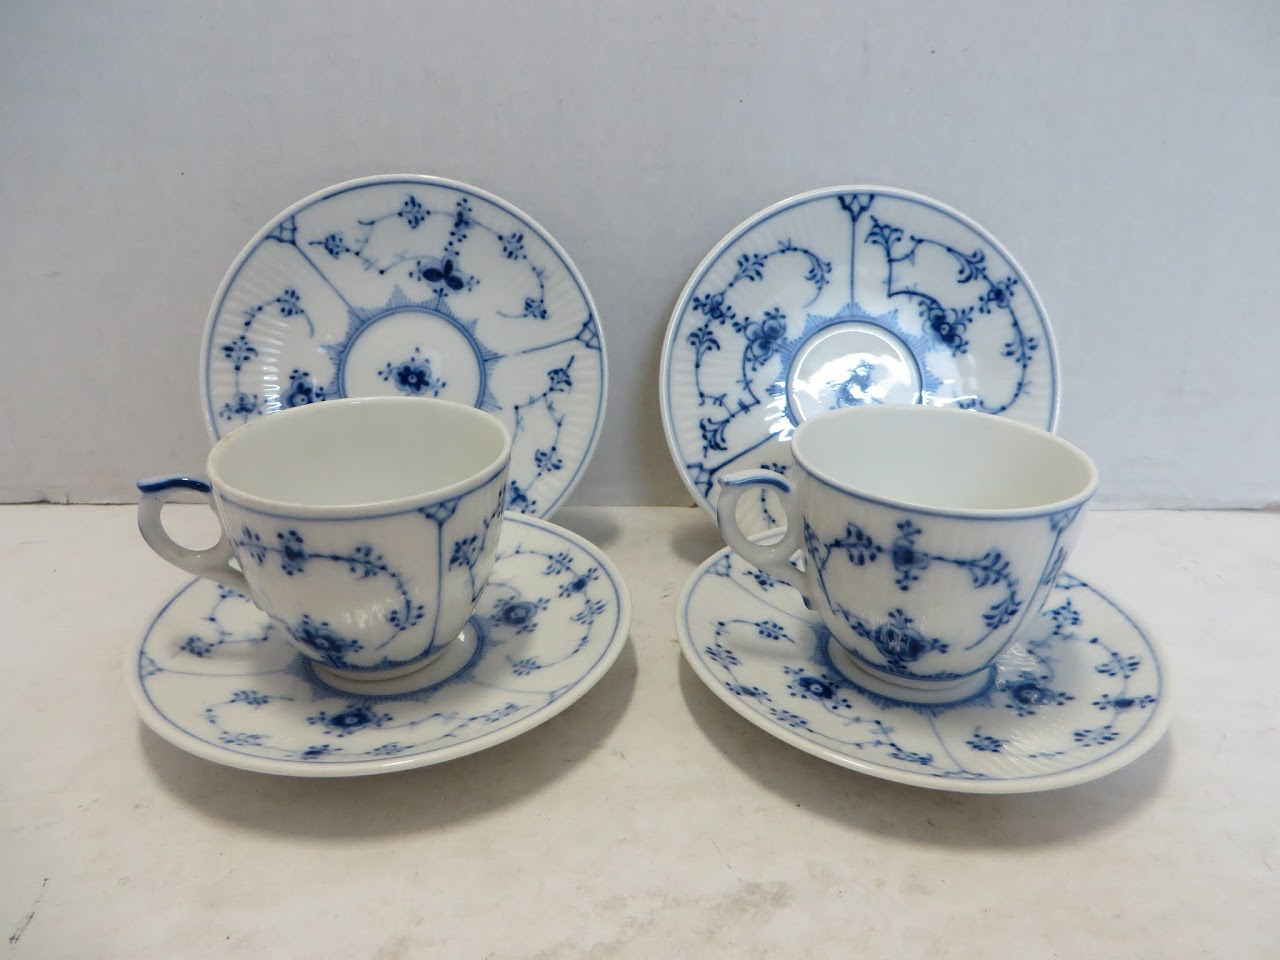 Royal Copenhagen Tea Cups and Saucers